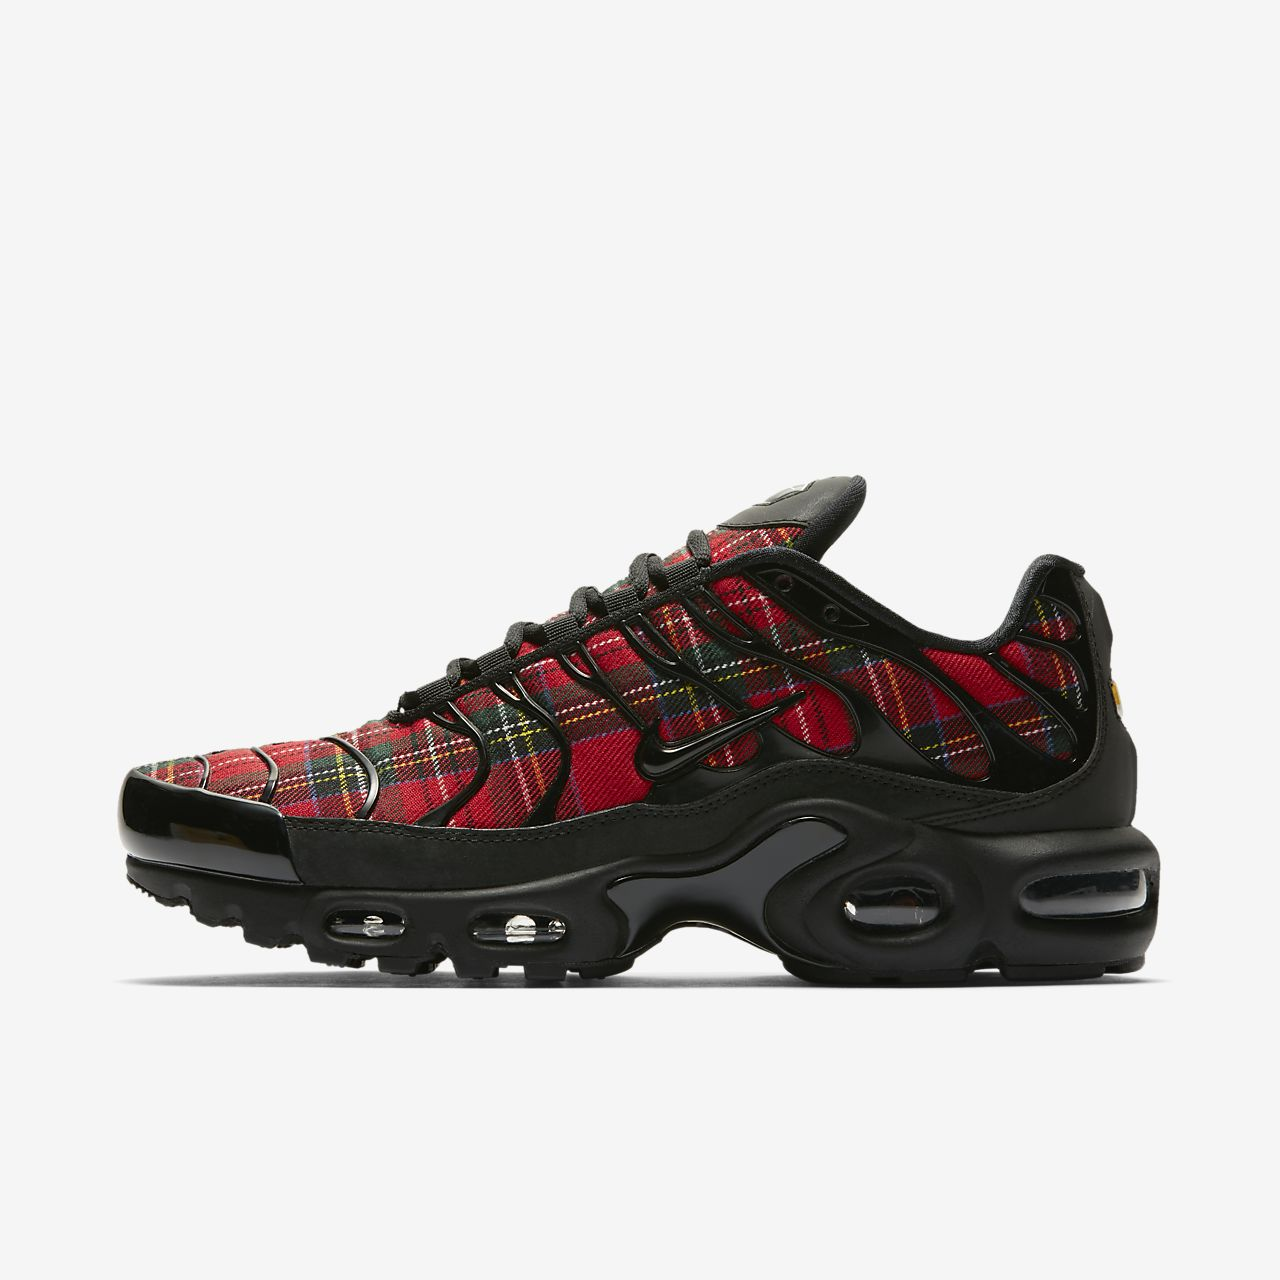 low priced 6af74 a0ce0 ... Nike Air Max Plus TN SE Zapatillas - Mujer